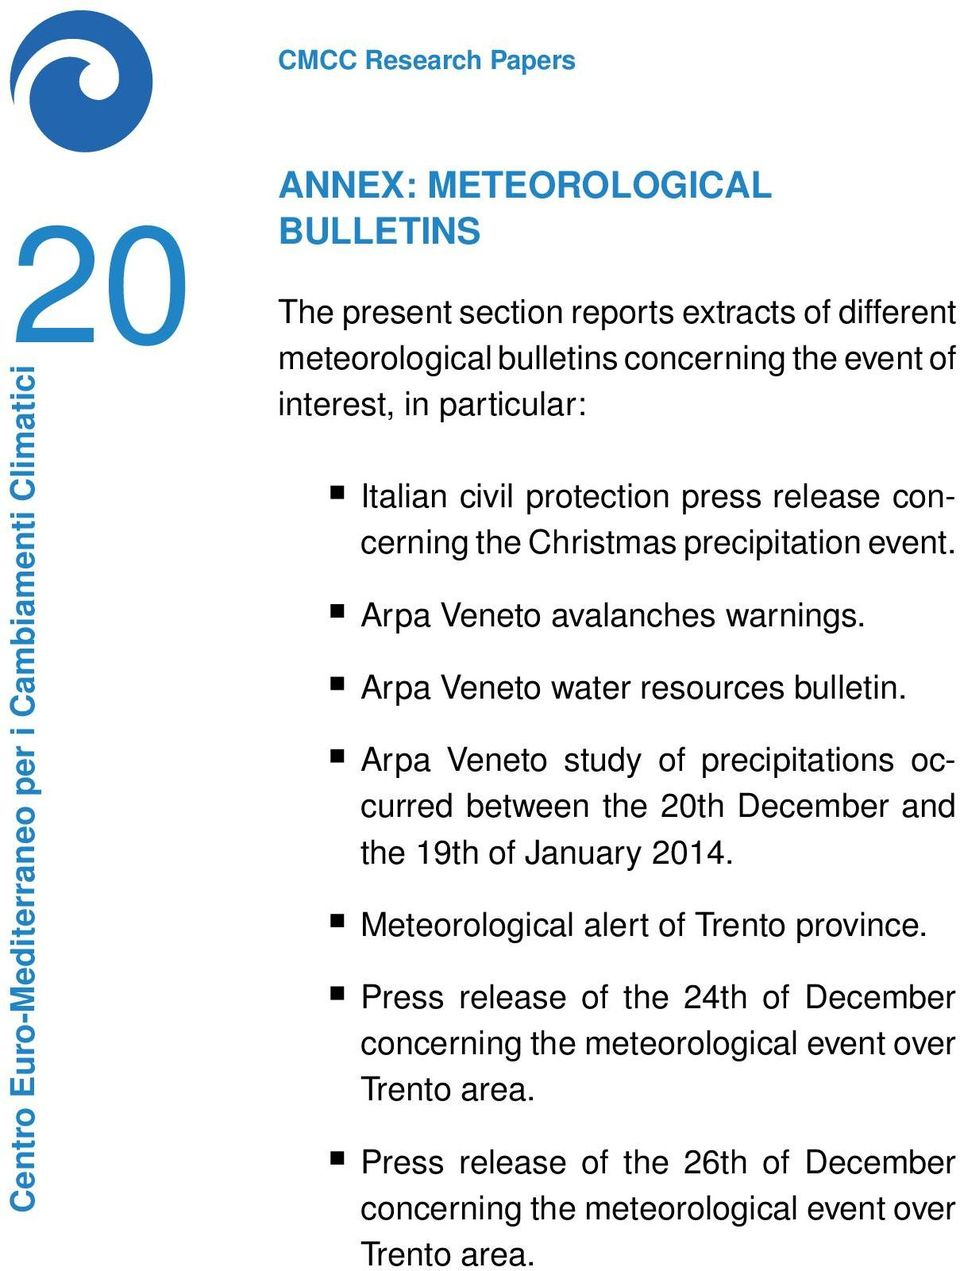 Arpa Veneto water resources bulletin. Arpa Veneto study of precipitations occurred between the 20th December and the 19th of January 2014.